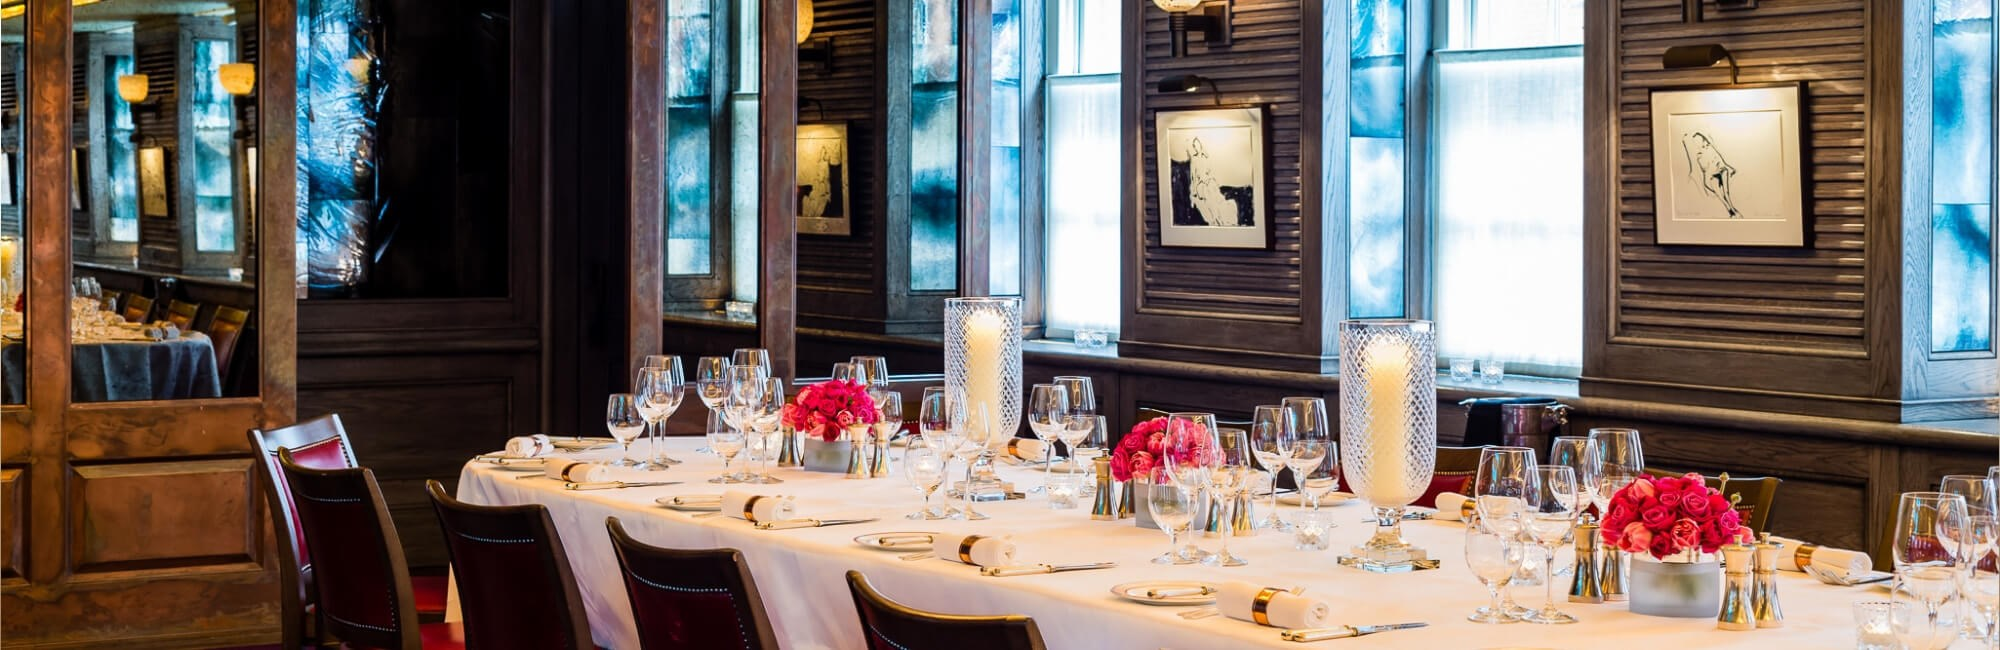 Private dining space at 34 Mayfair in Central London